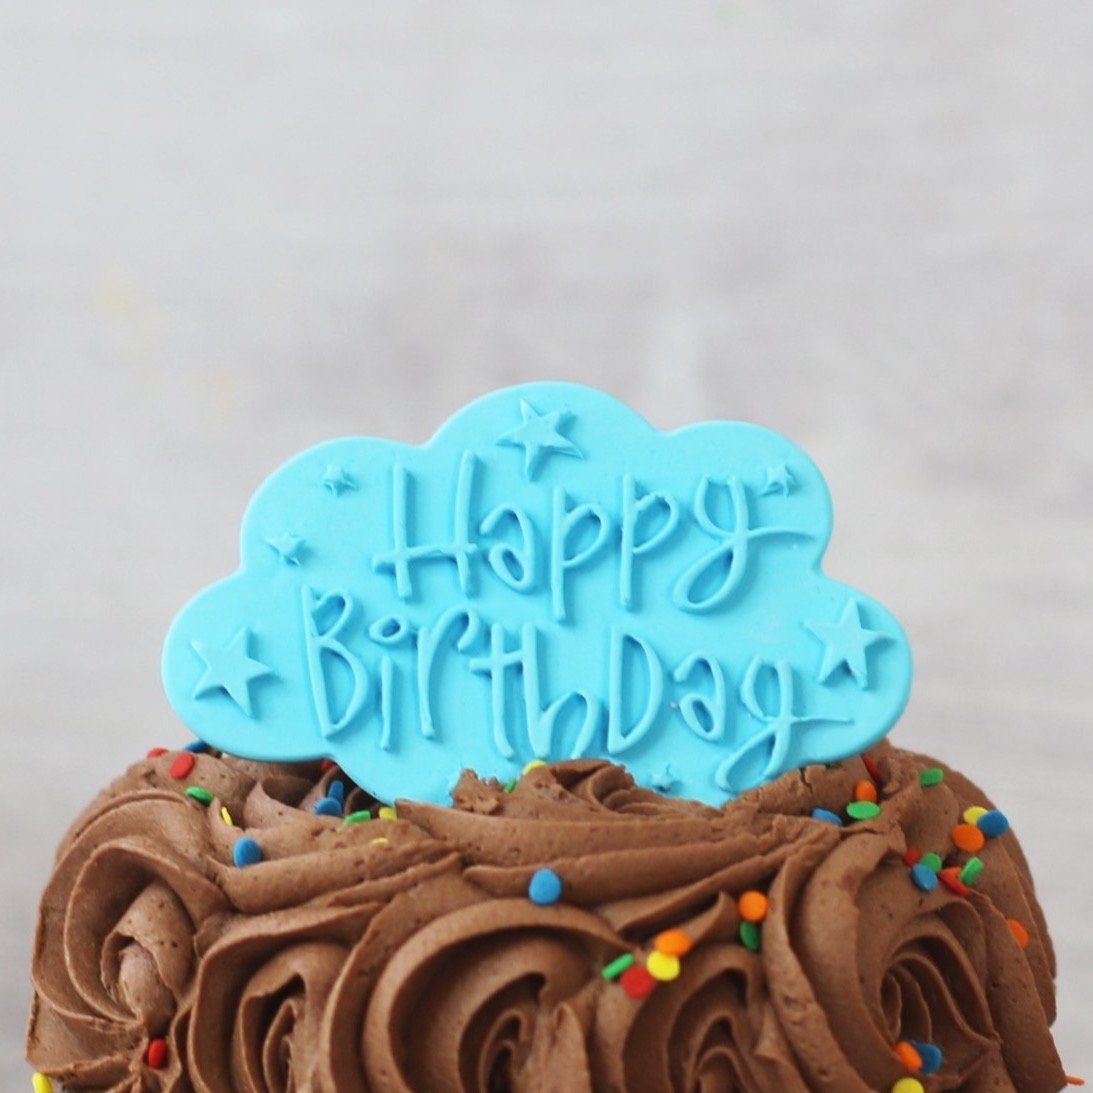 Blue Happy Birthday Cake Plaque Gift Accessories